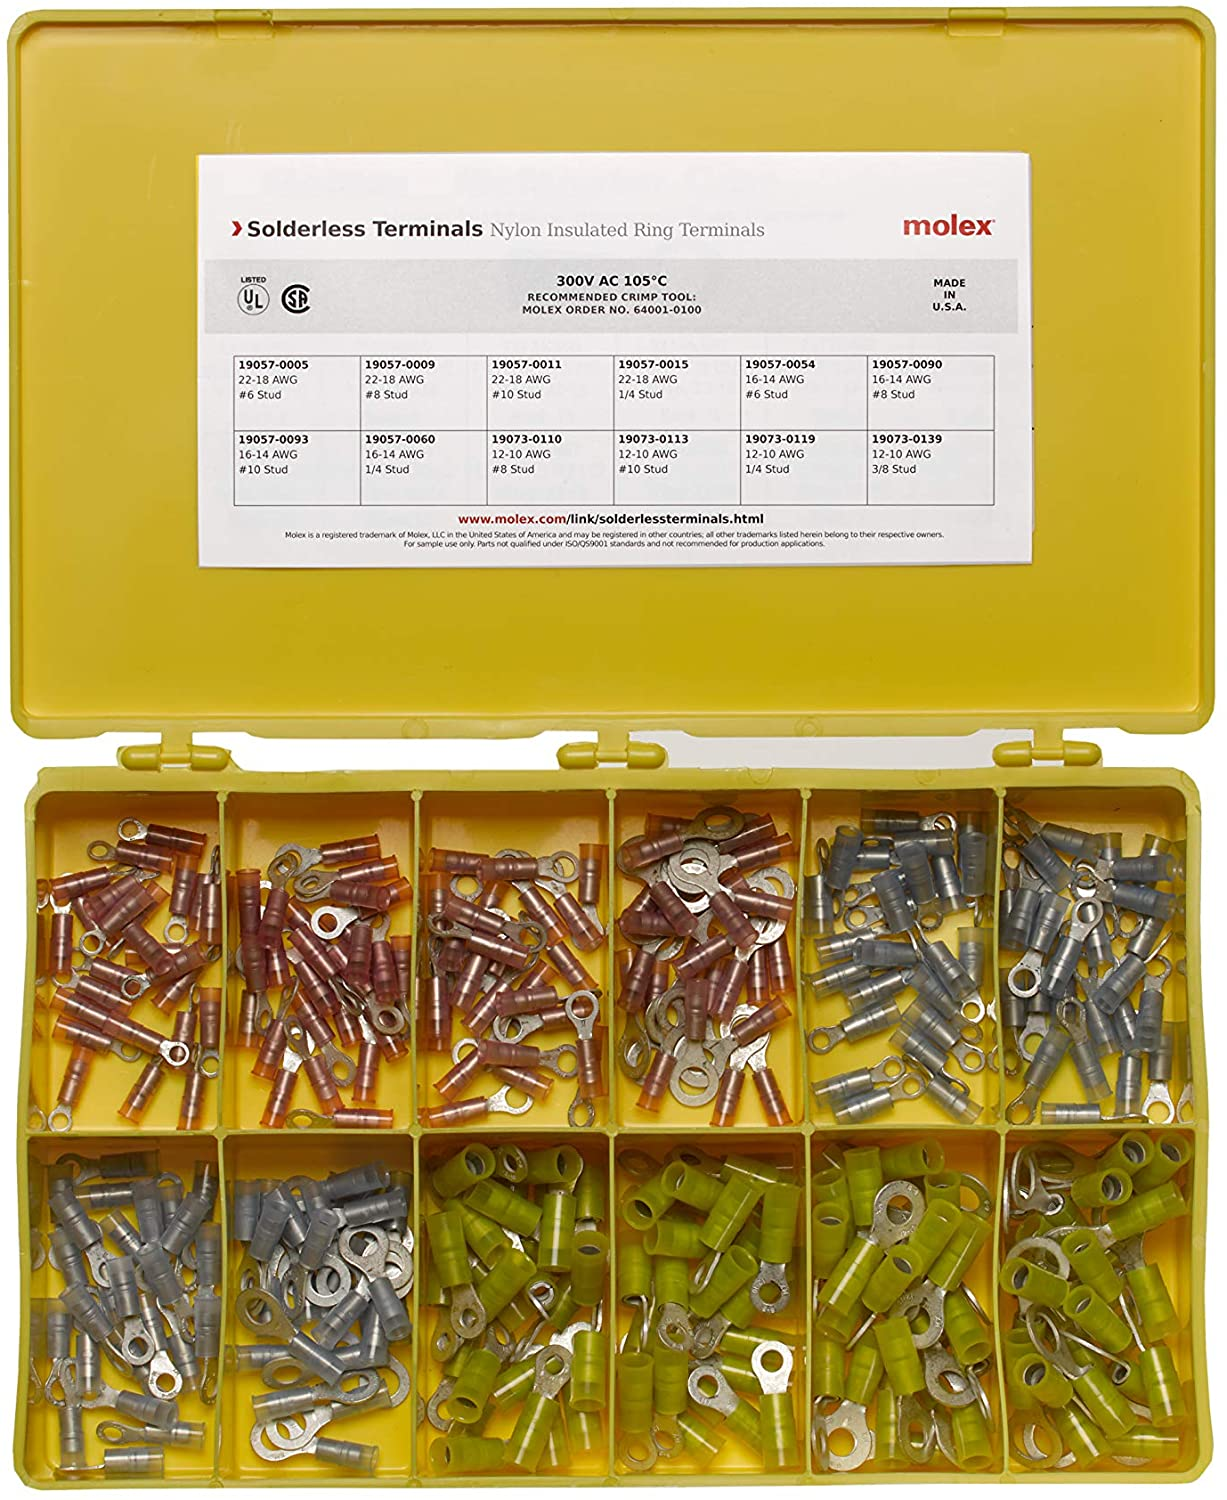 Molex 194130105 Solderless Terminals Kit, Nylon Insulated Ring Terminals, 300 Piece Kit, Made in America